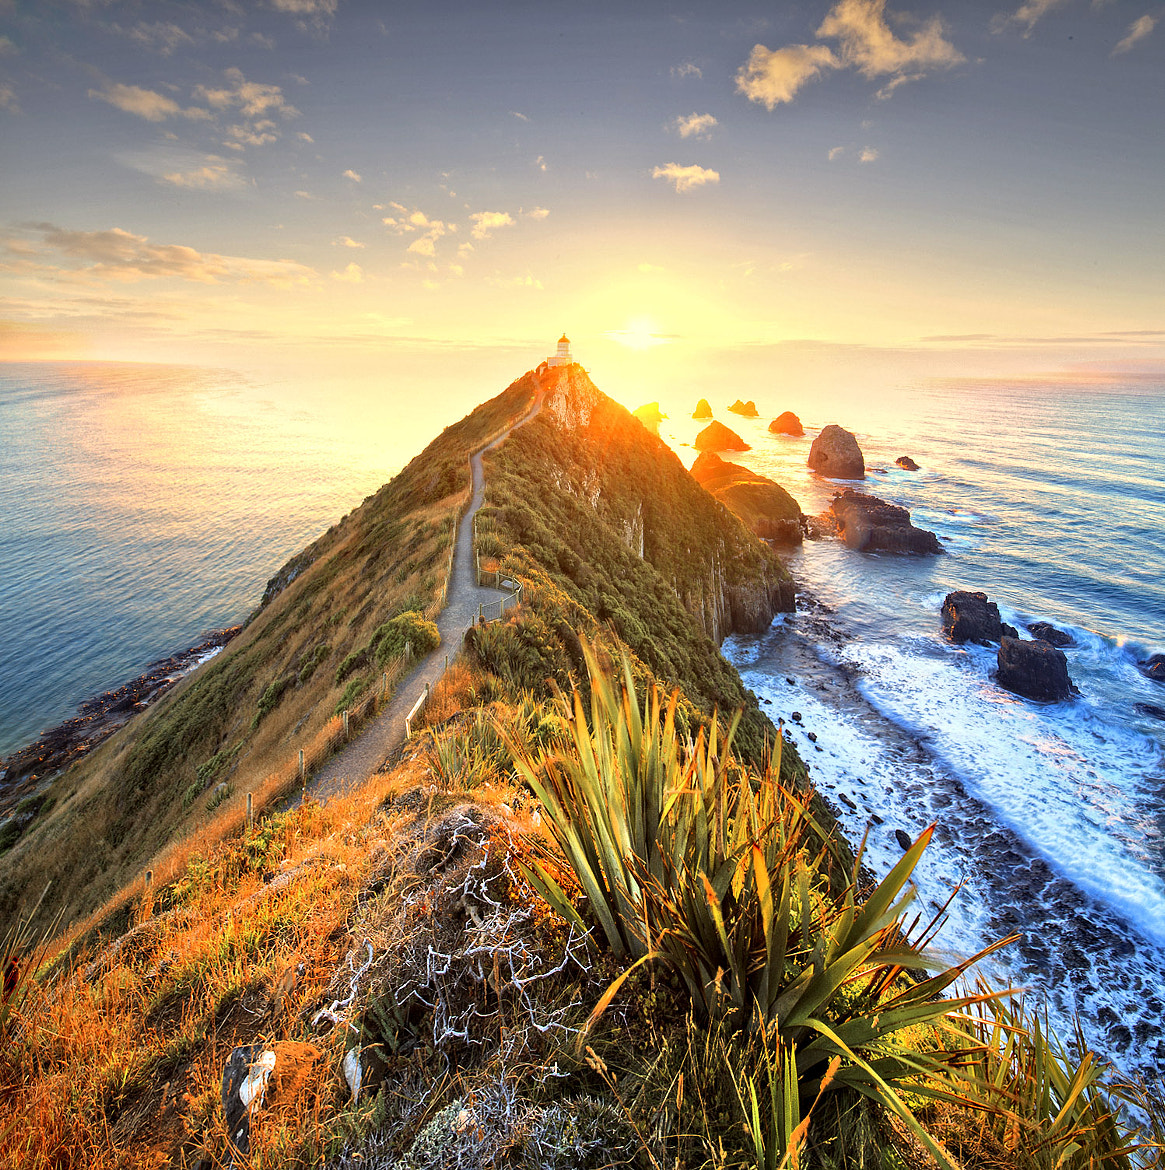 Photograph sunrise over nugget point by Maurizio Rellini on 500px